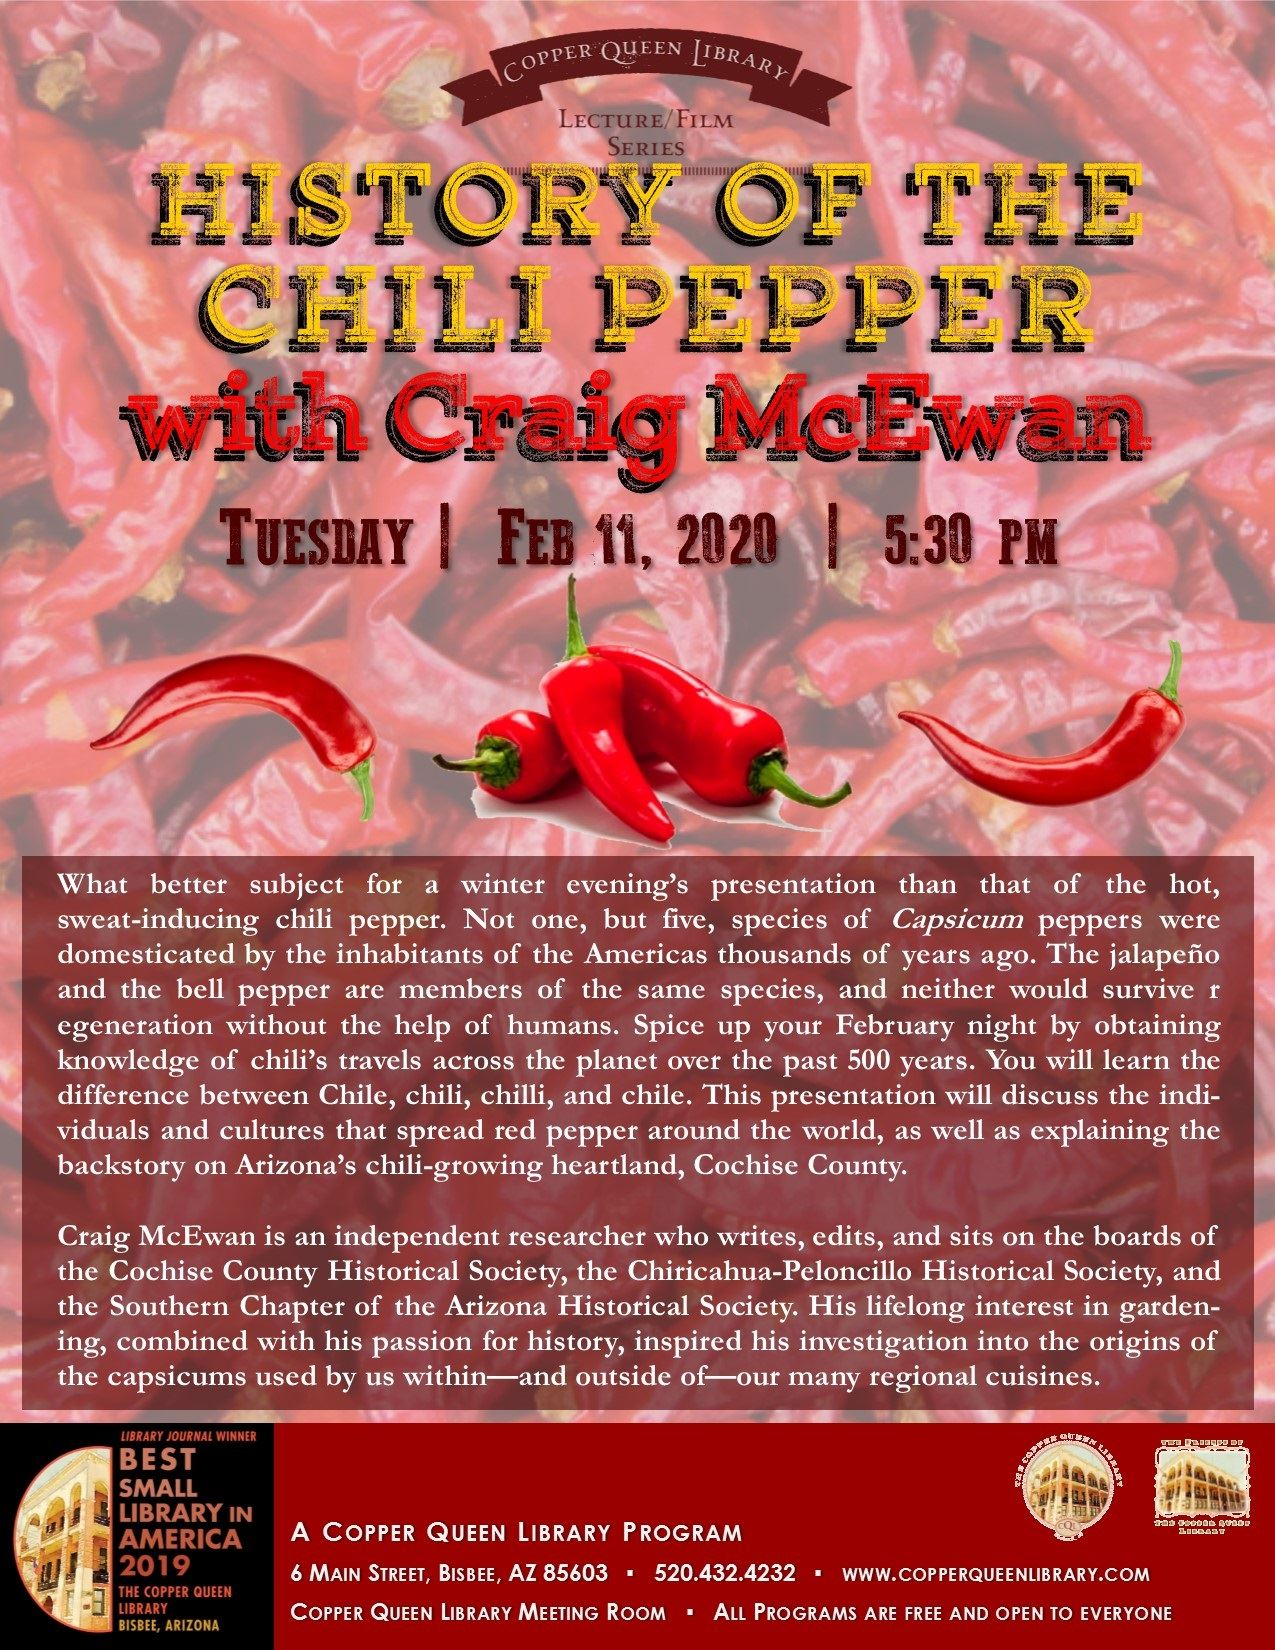 CRAIG MCEWAN HISTORY OF CHILI